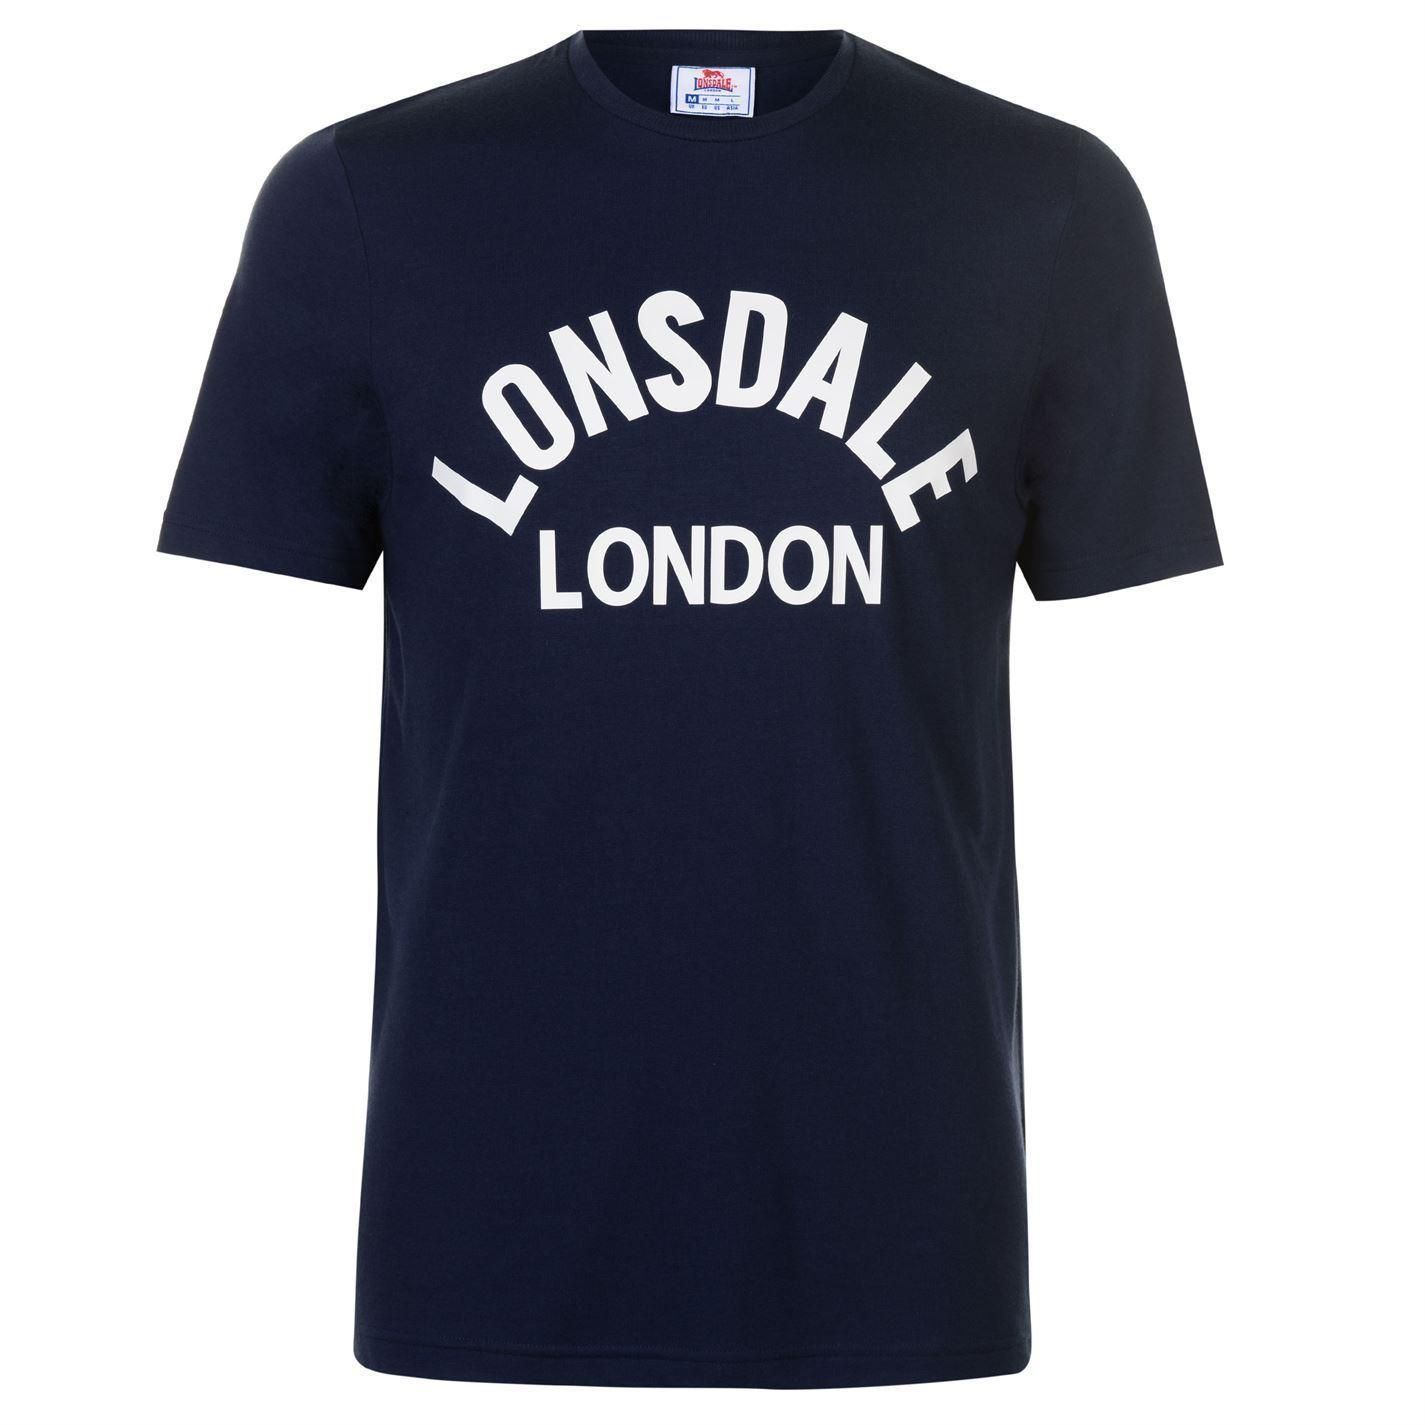 Uomo Arch London Shirt Lonsdale Acquista T Blu Scuro CxBrdoe